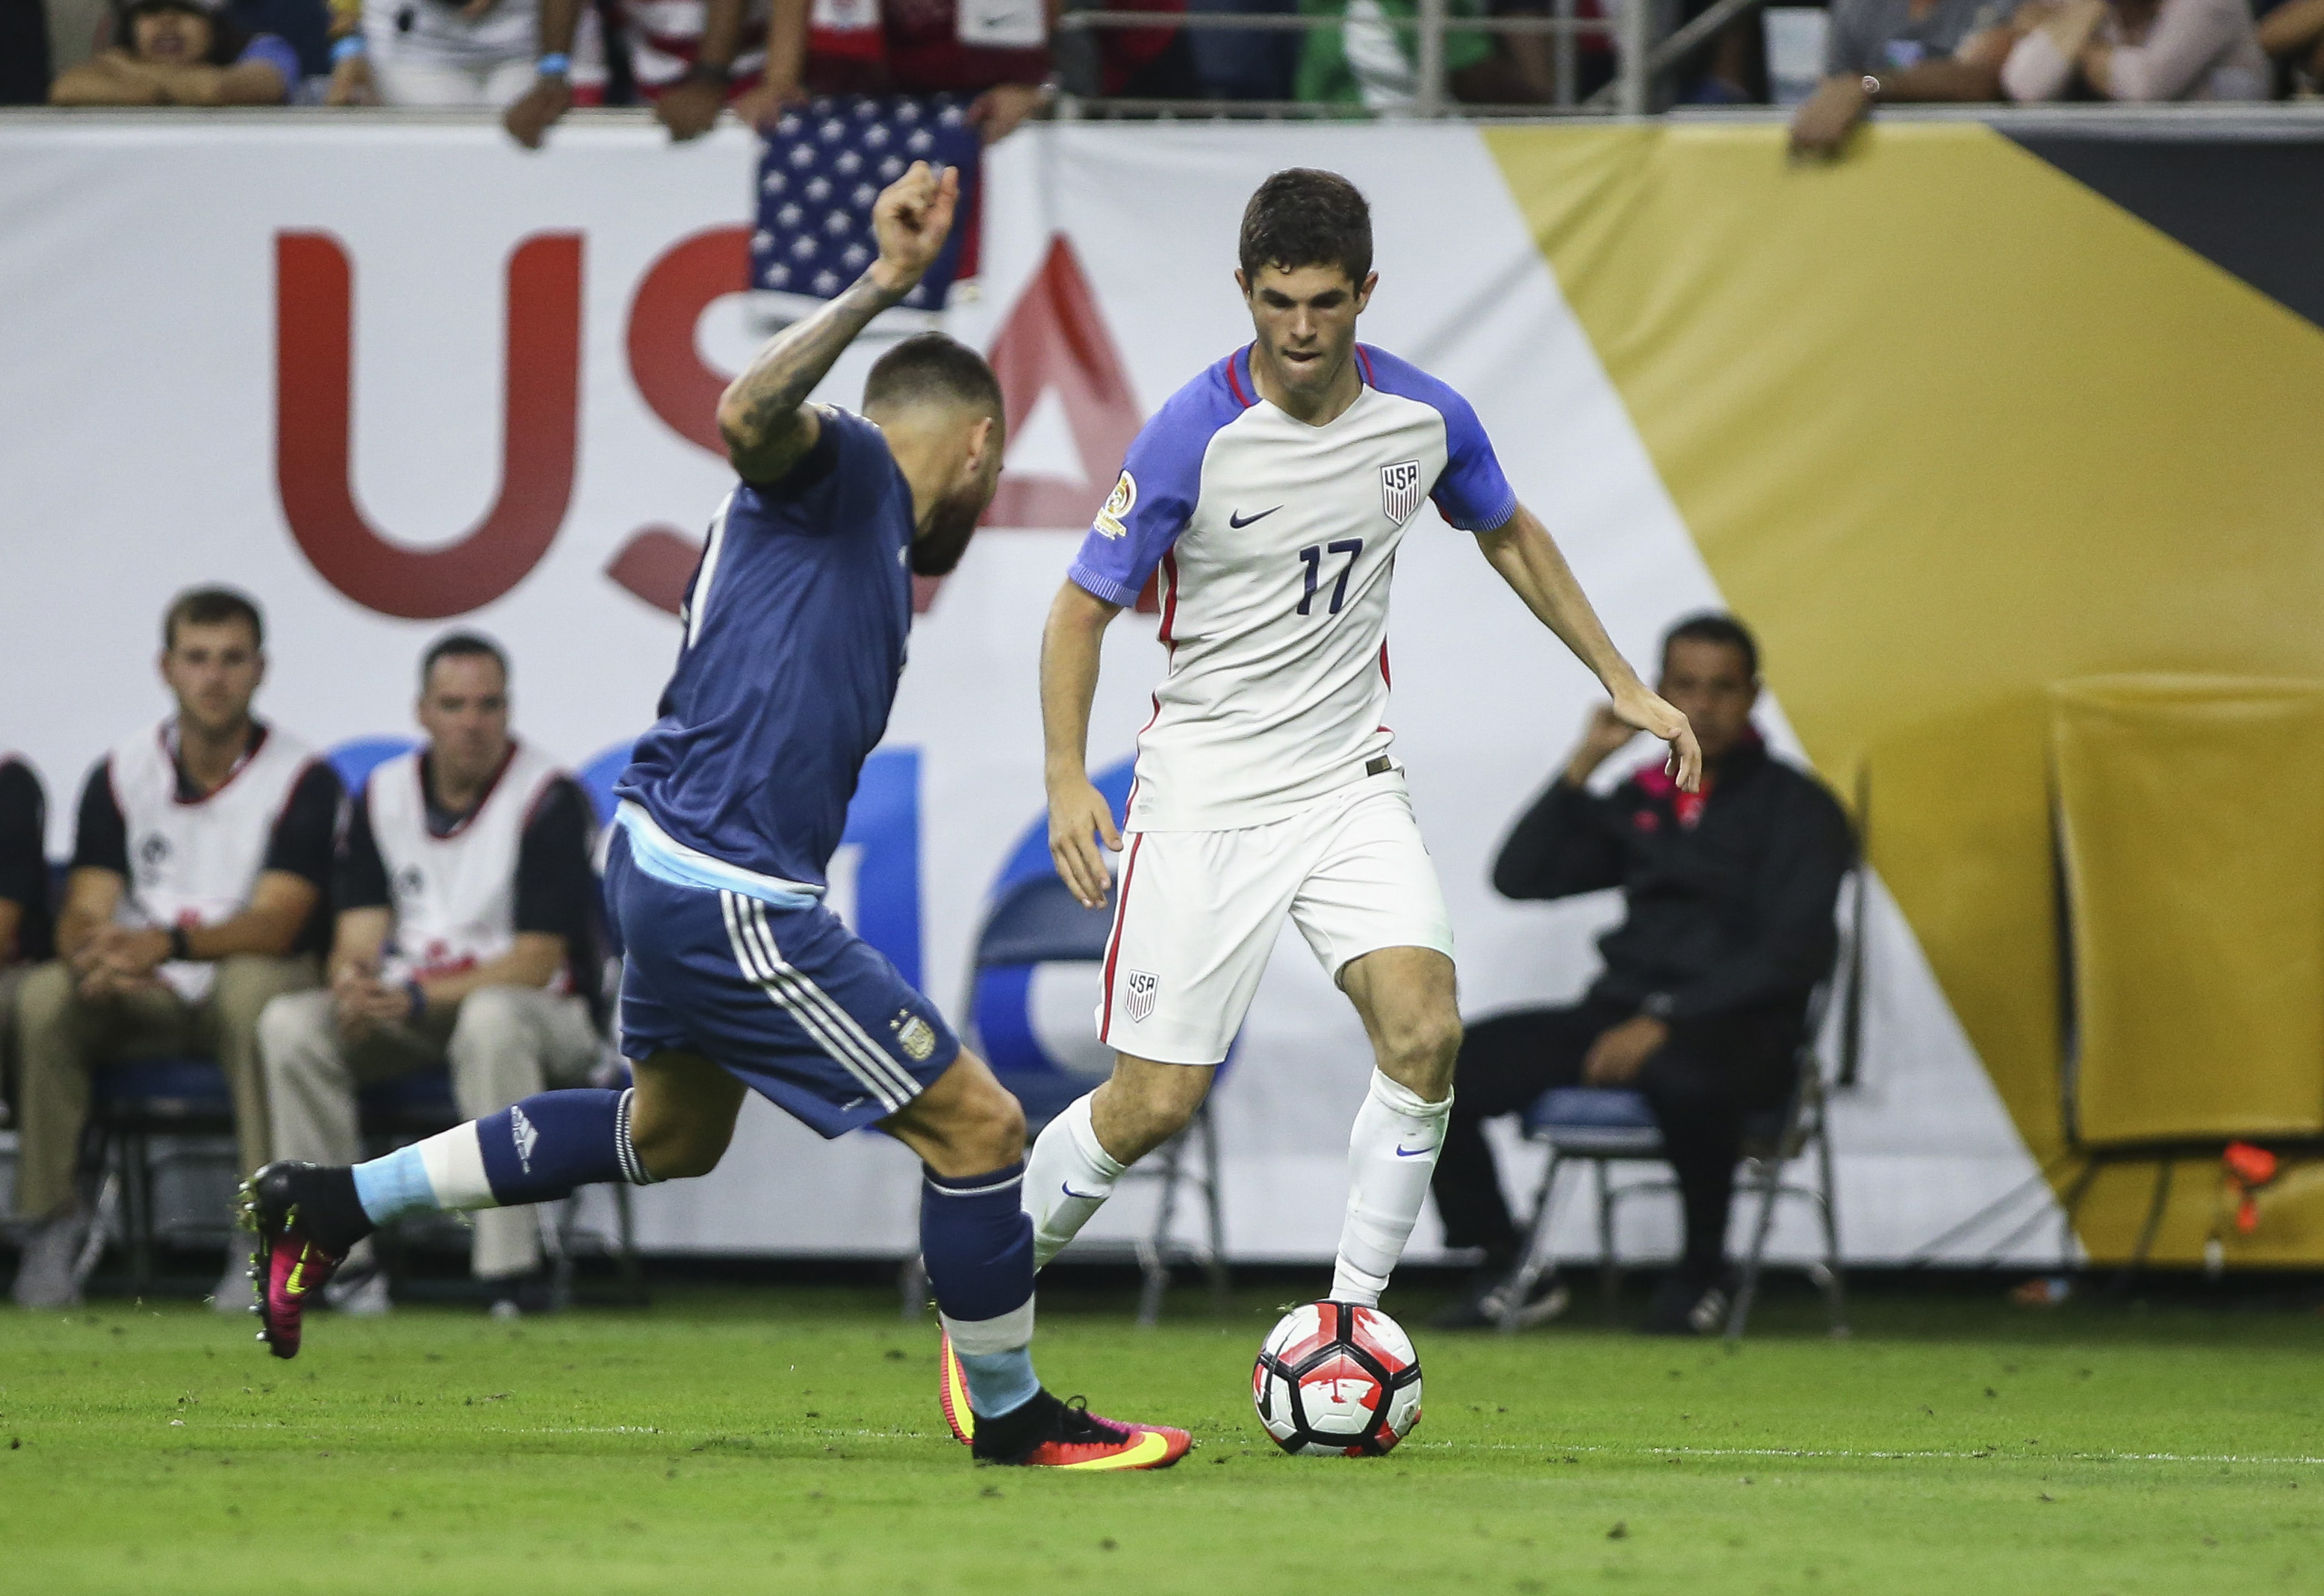 Pulisic skipped prom for this, he's hoping to start against Colombia.